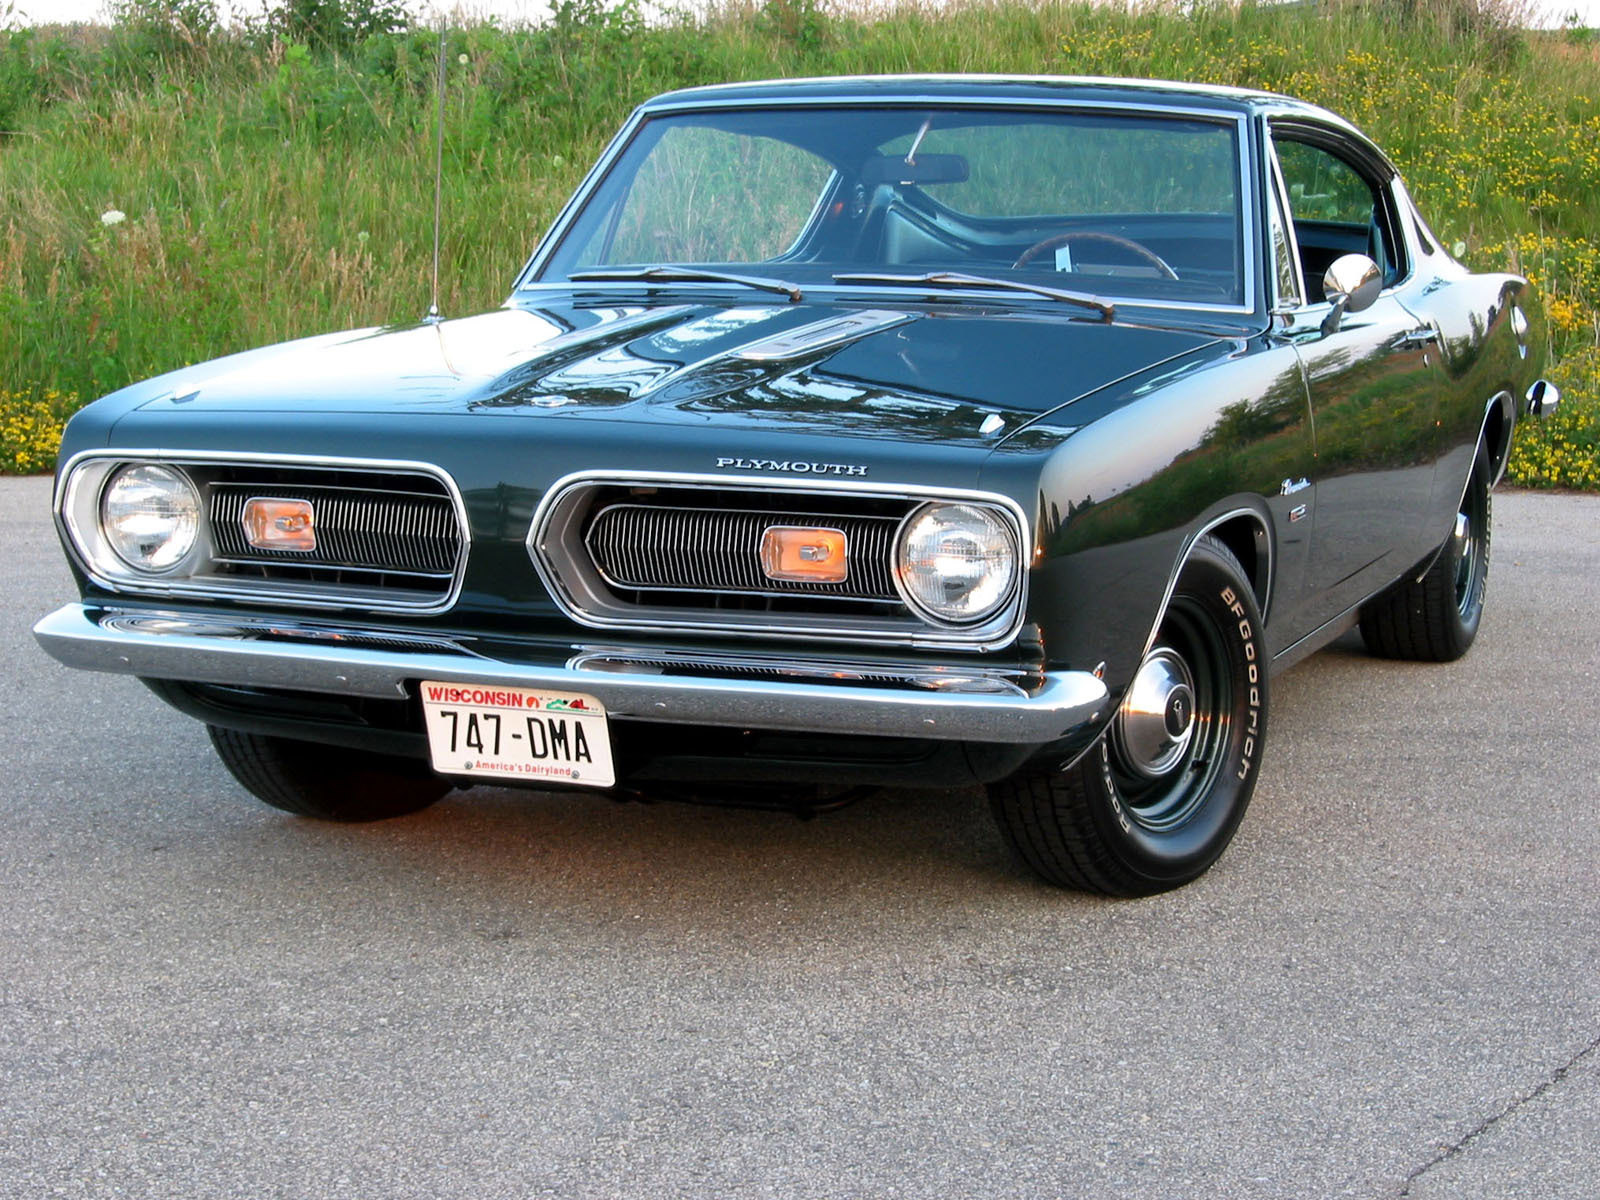 3dtuning of plymouth barracuda coupe 1968. Black Bedroom Furniture Sets. Home Design Ideas